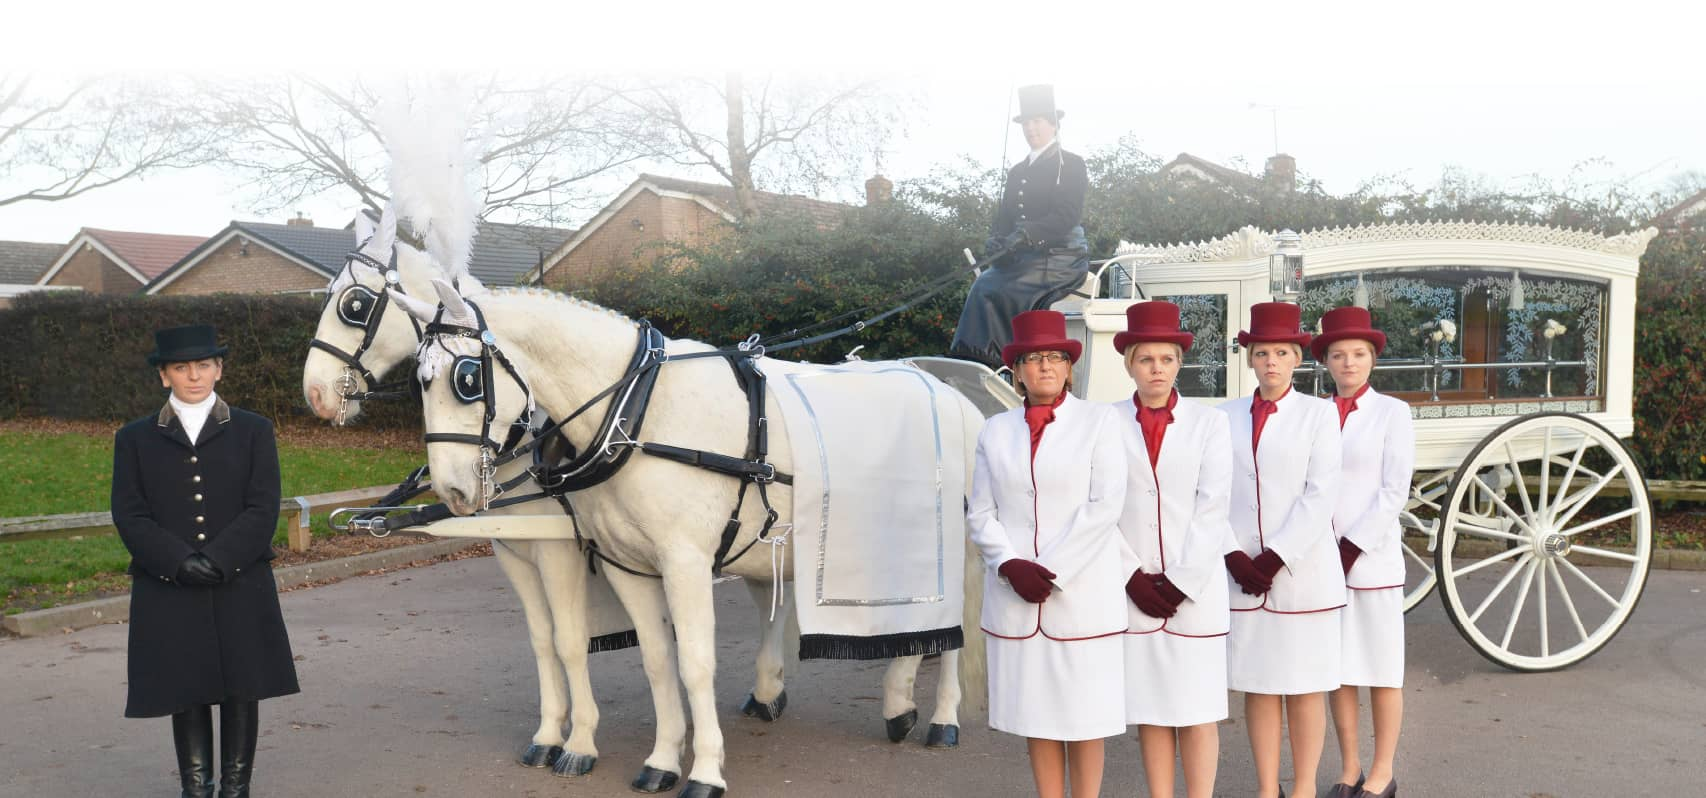 Our white funeral carriage at Walsh Funerals & Memorials